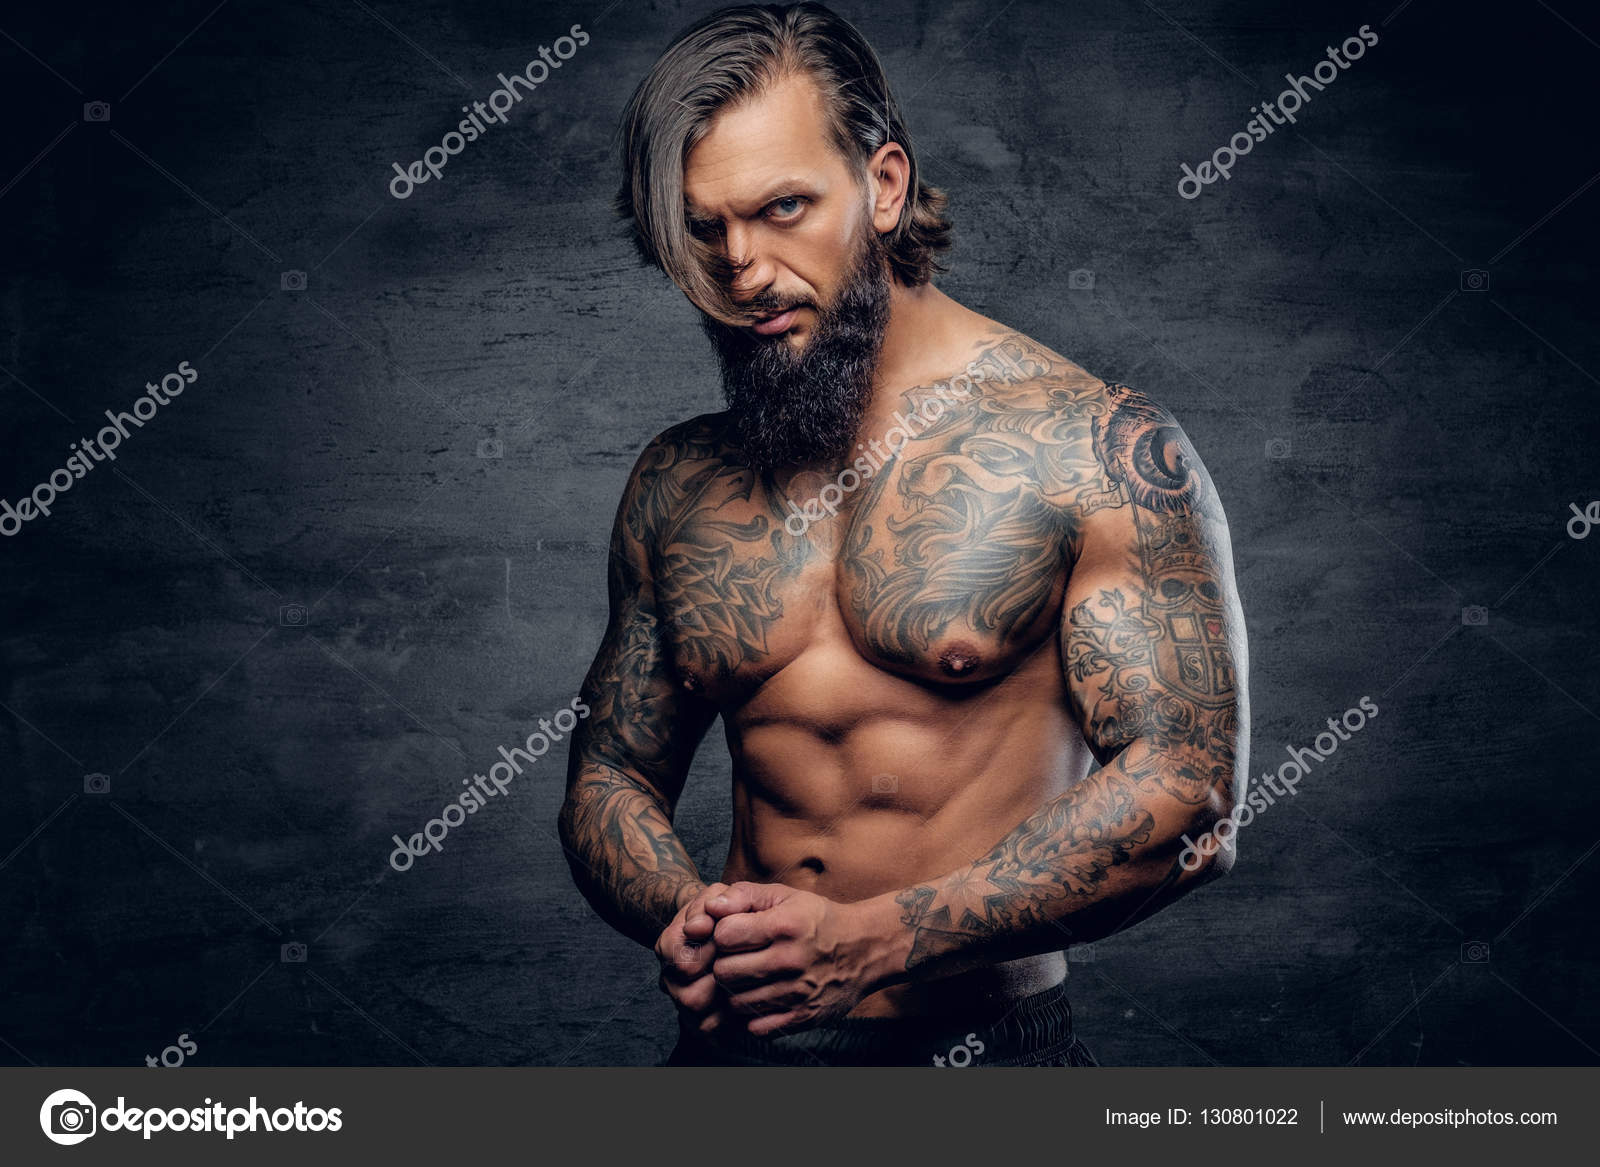 Think, Men with beards tattoos and muscles share